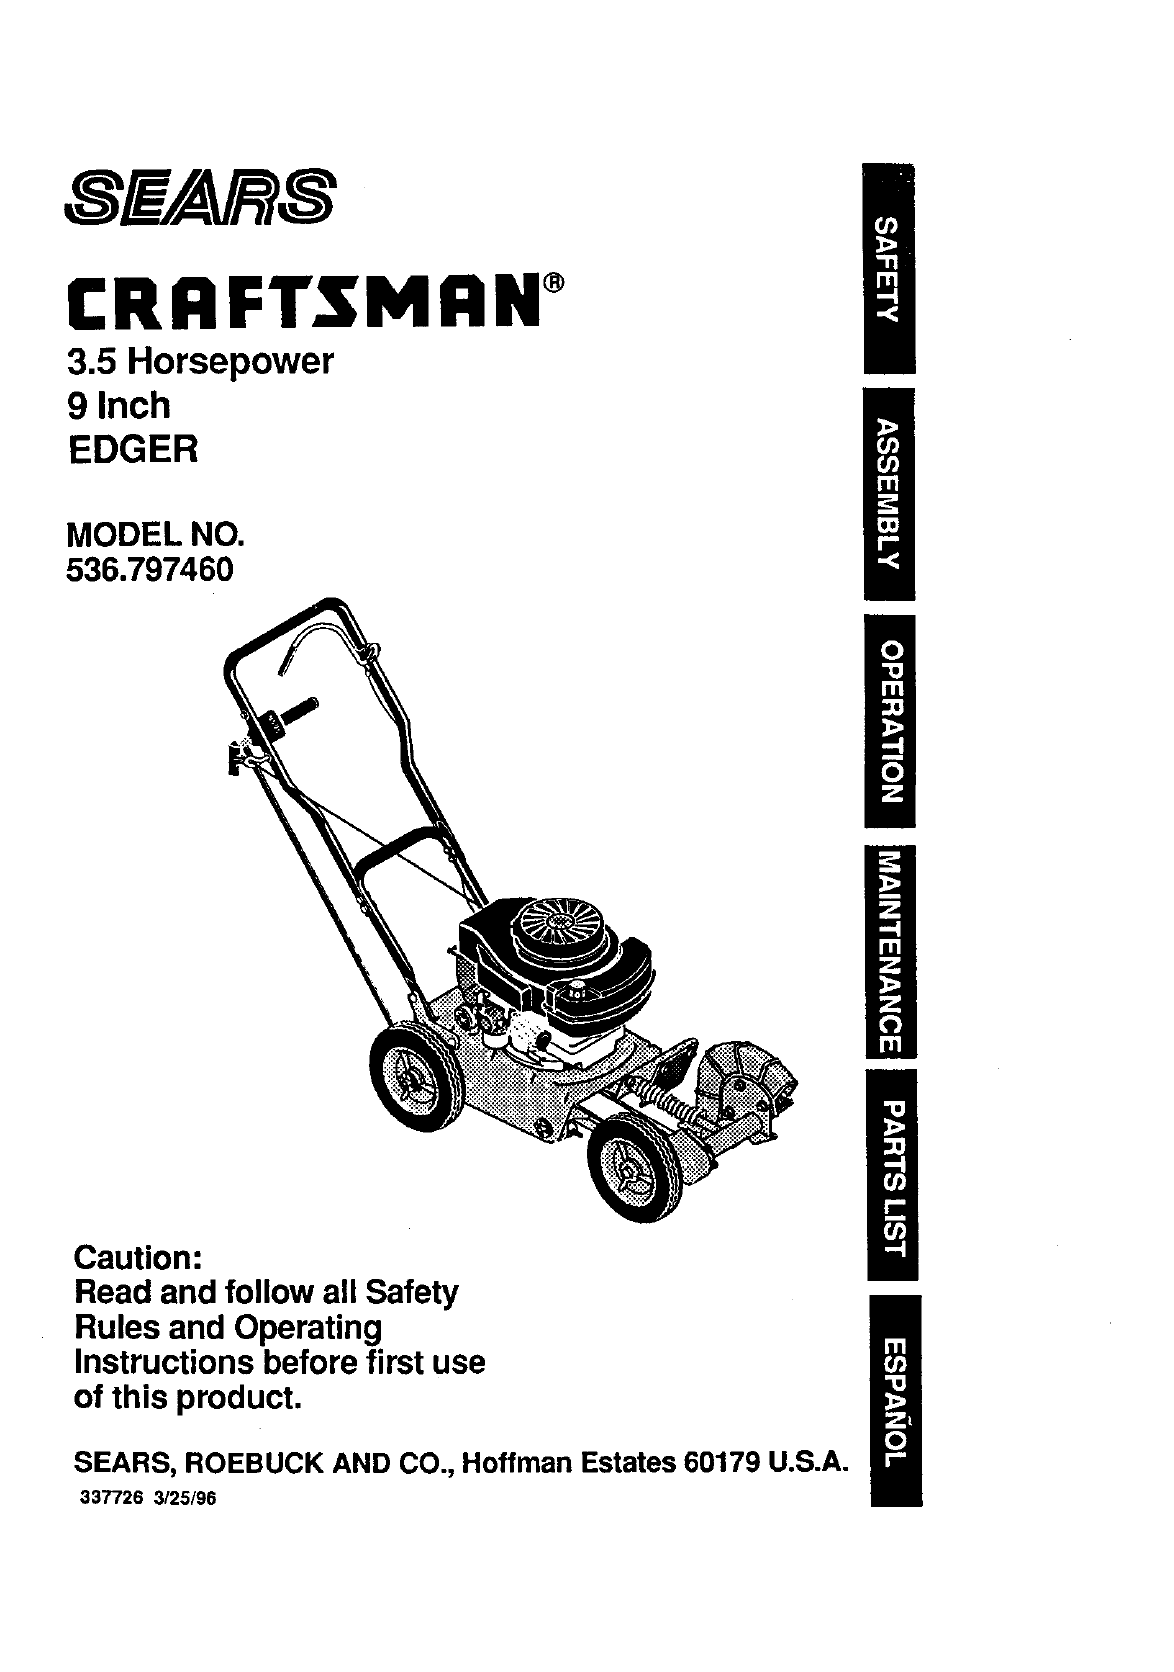 Craftsman User Manual 3 5 Hp 9 Edger Manuals And